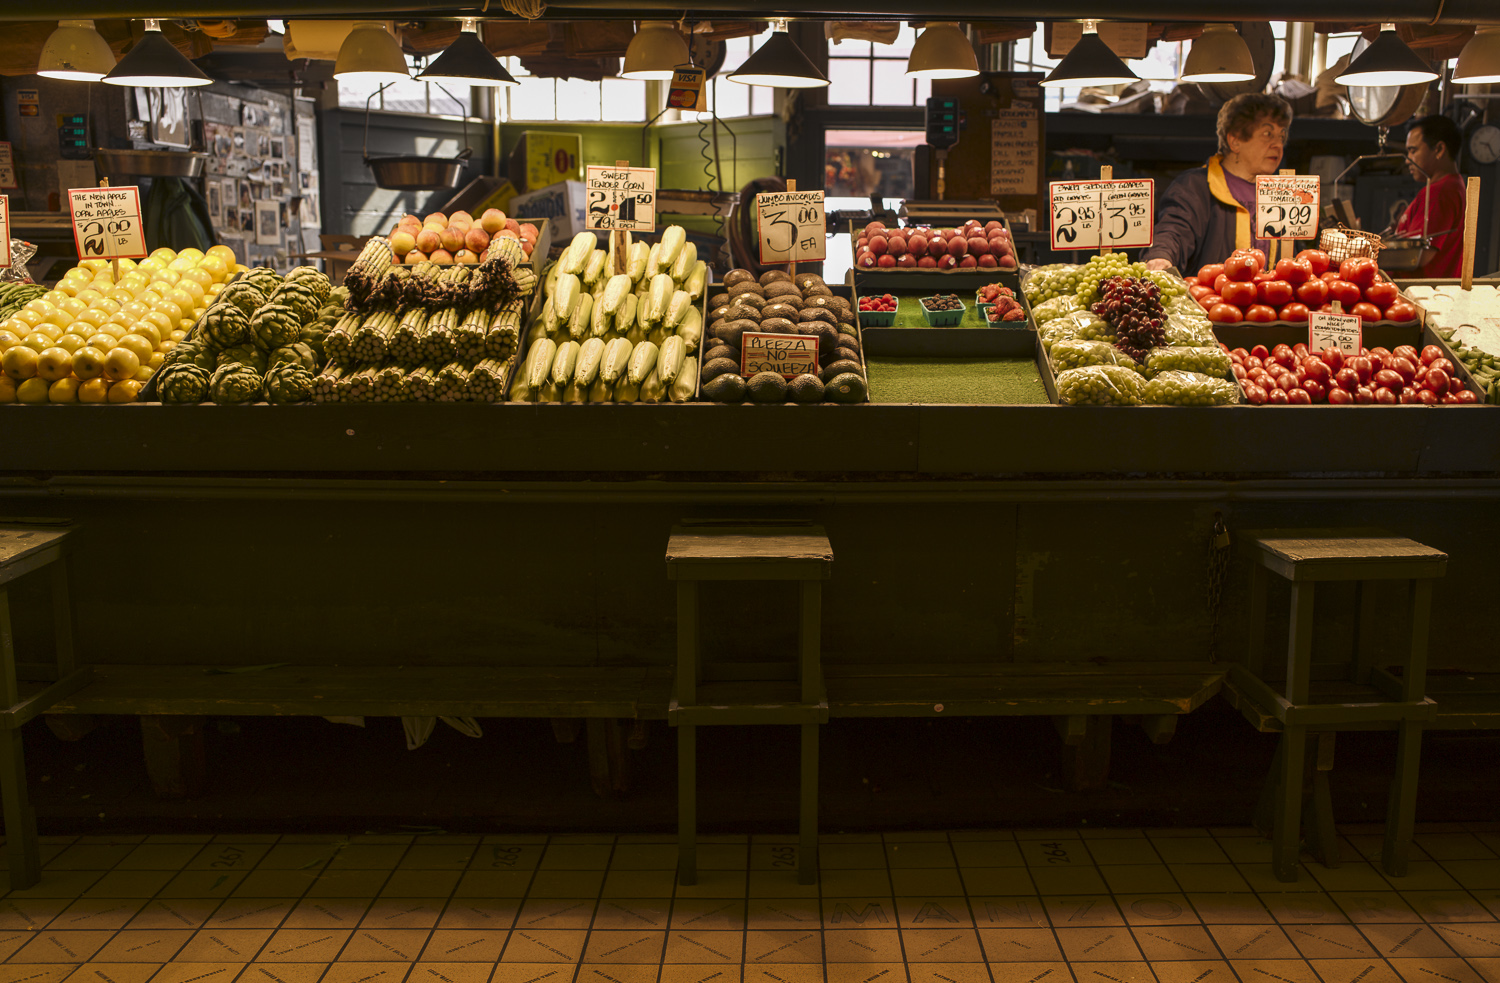 Vegetable Stall, Pike Street Market, Seattle - 2010